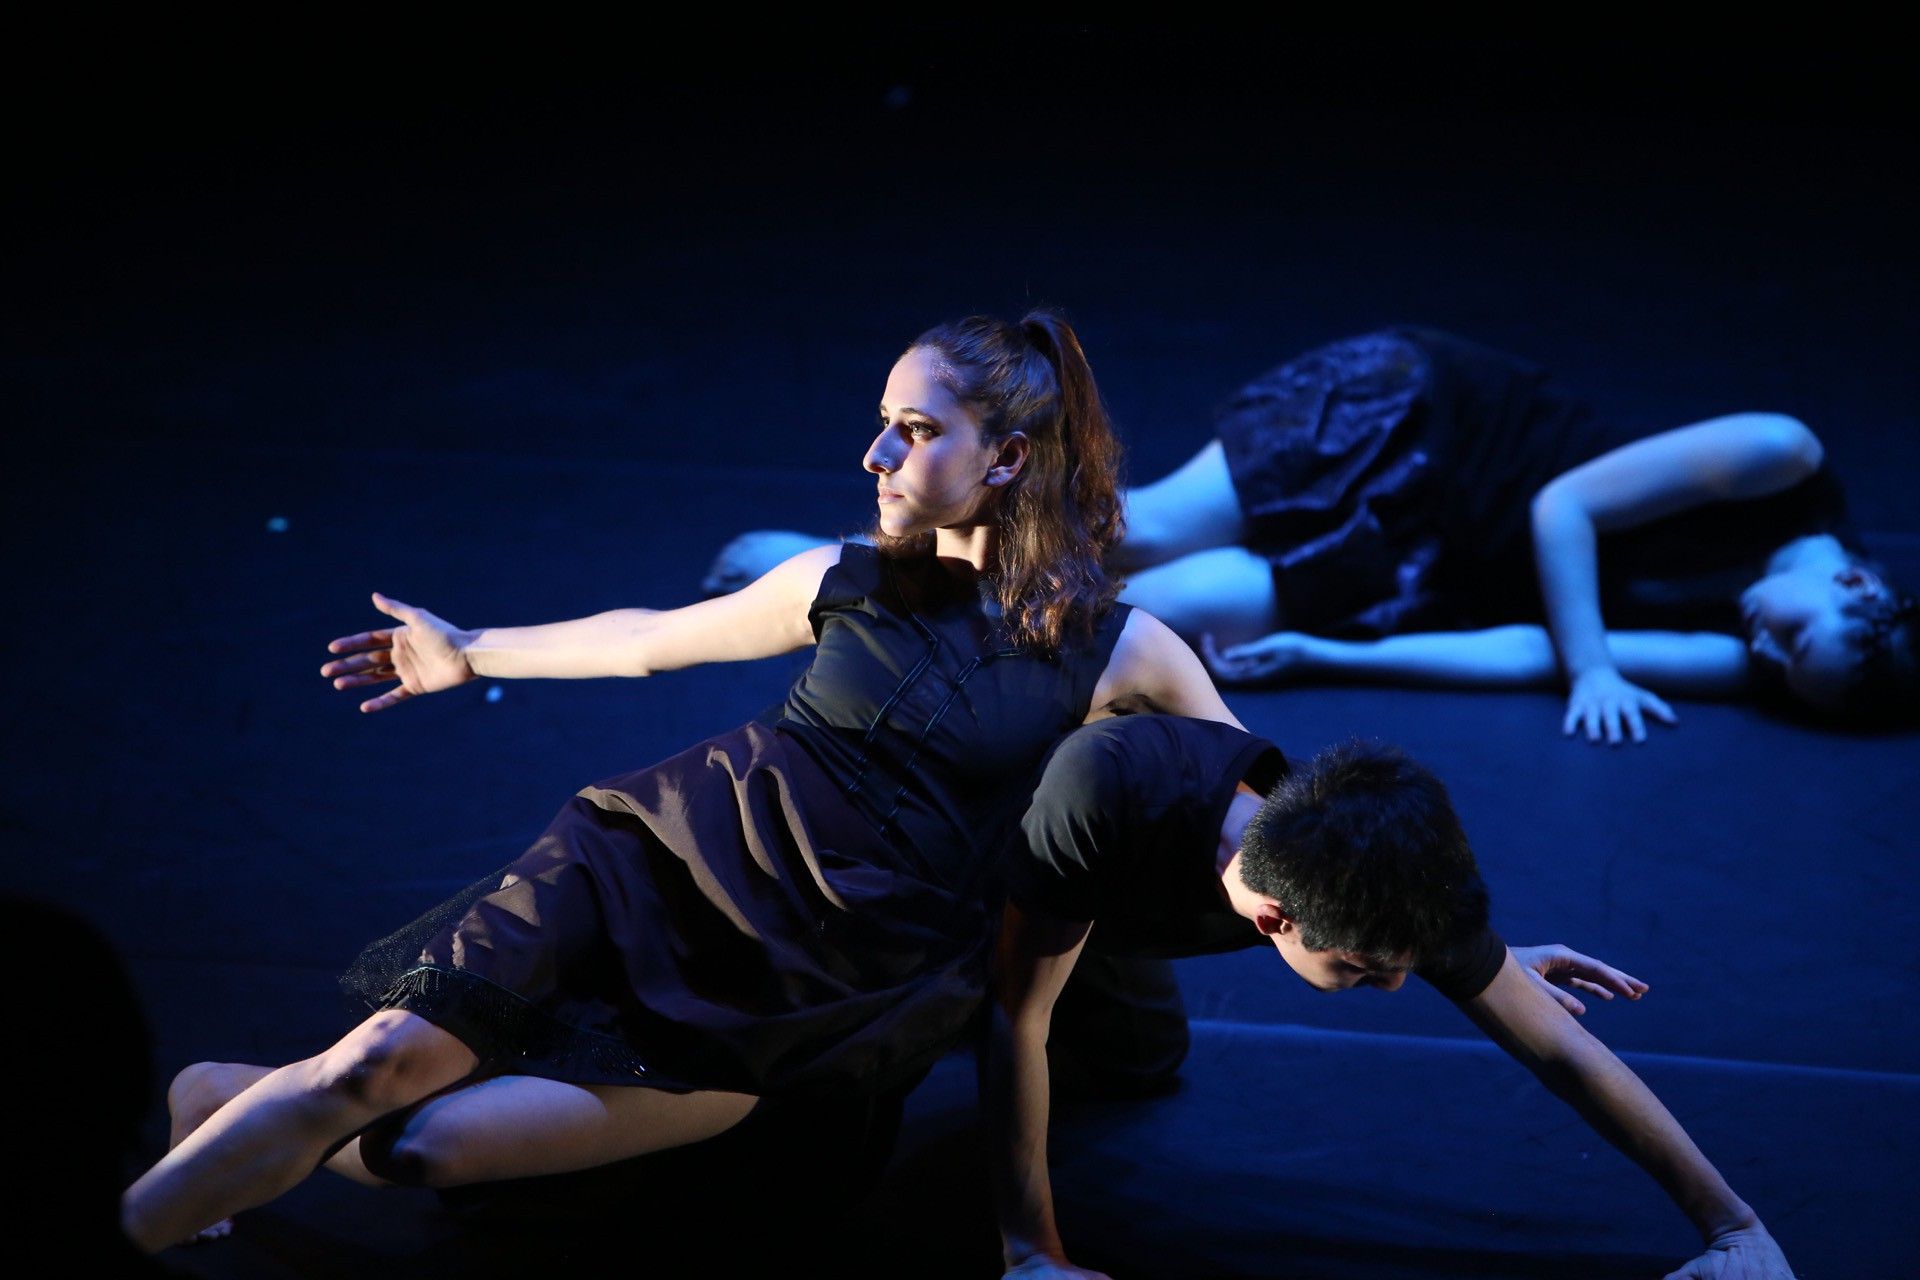 A 2018 performance of 'Catching Her Tears', choreographed by Colleen Thomas-Young